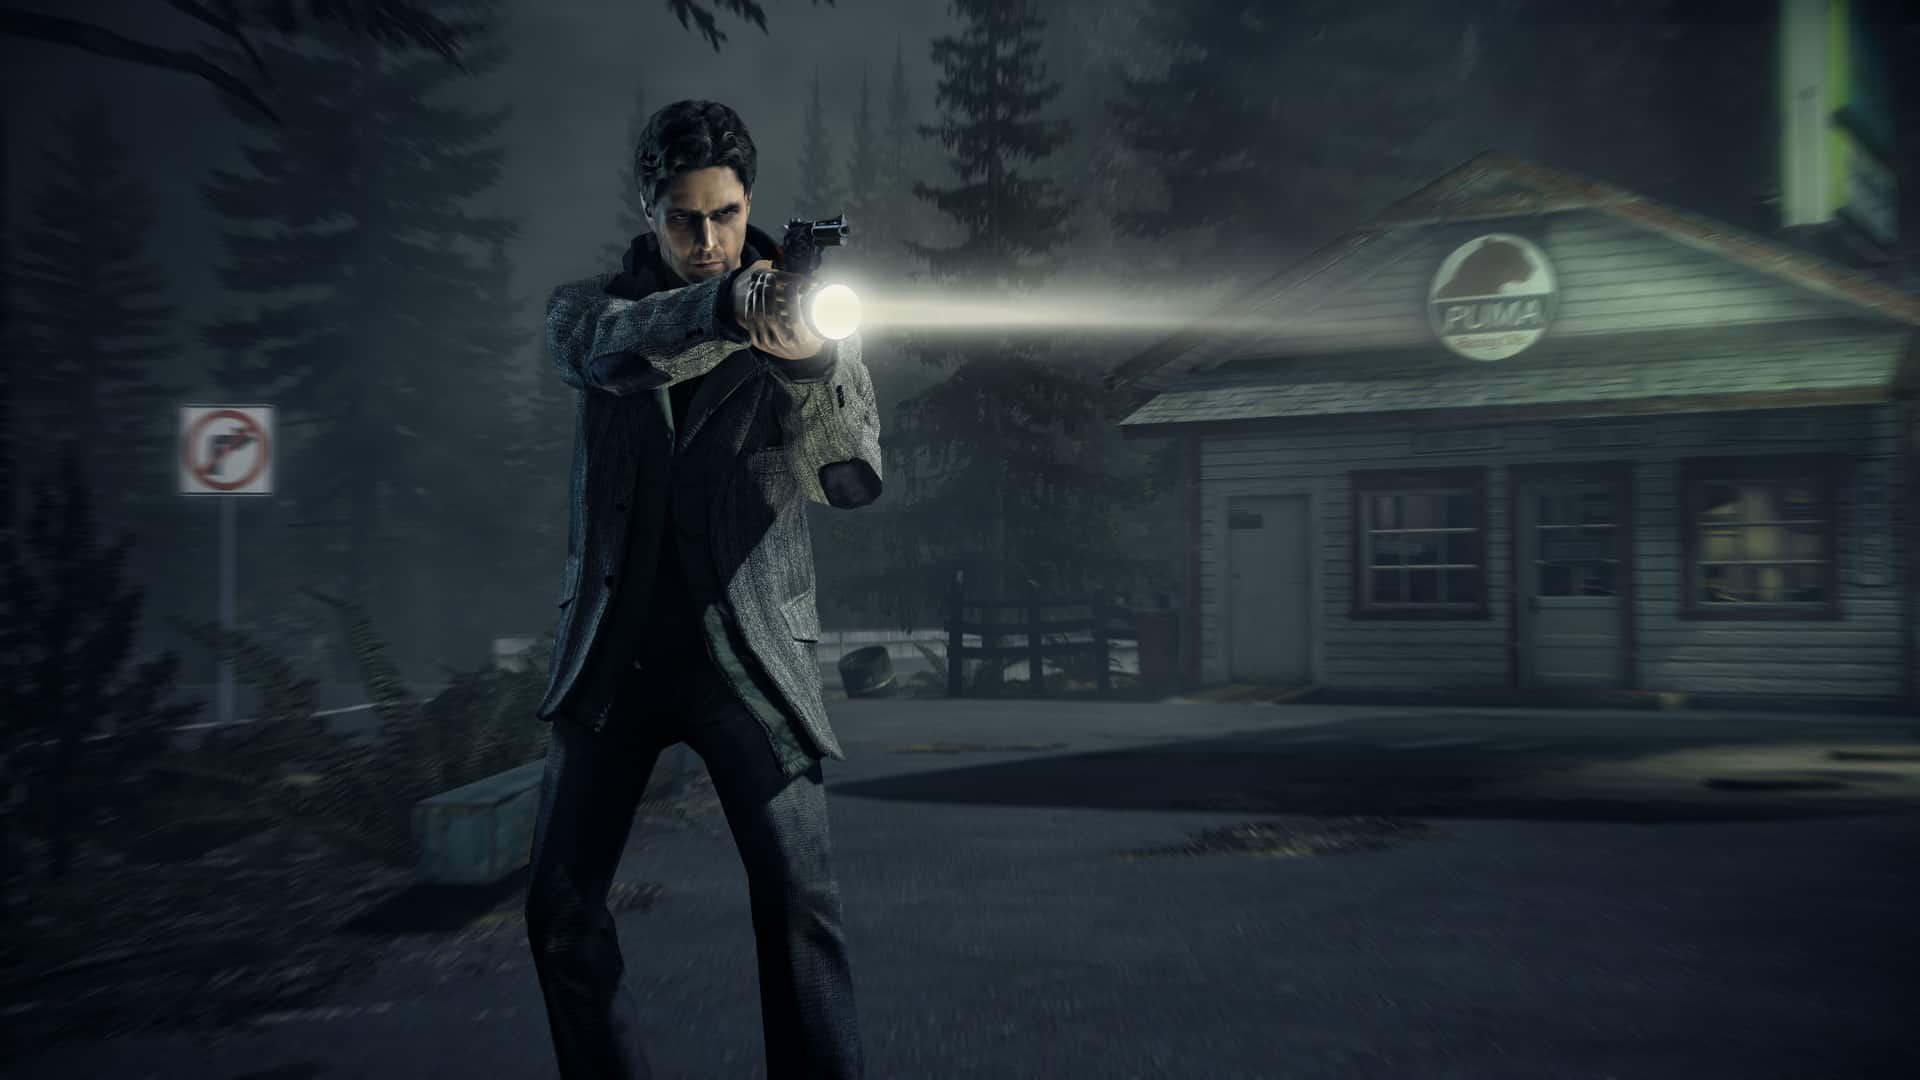 Alan Wake in offerta su Steam a 2,79 euro